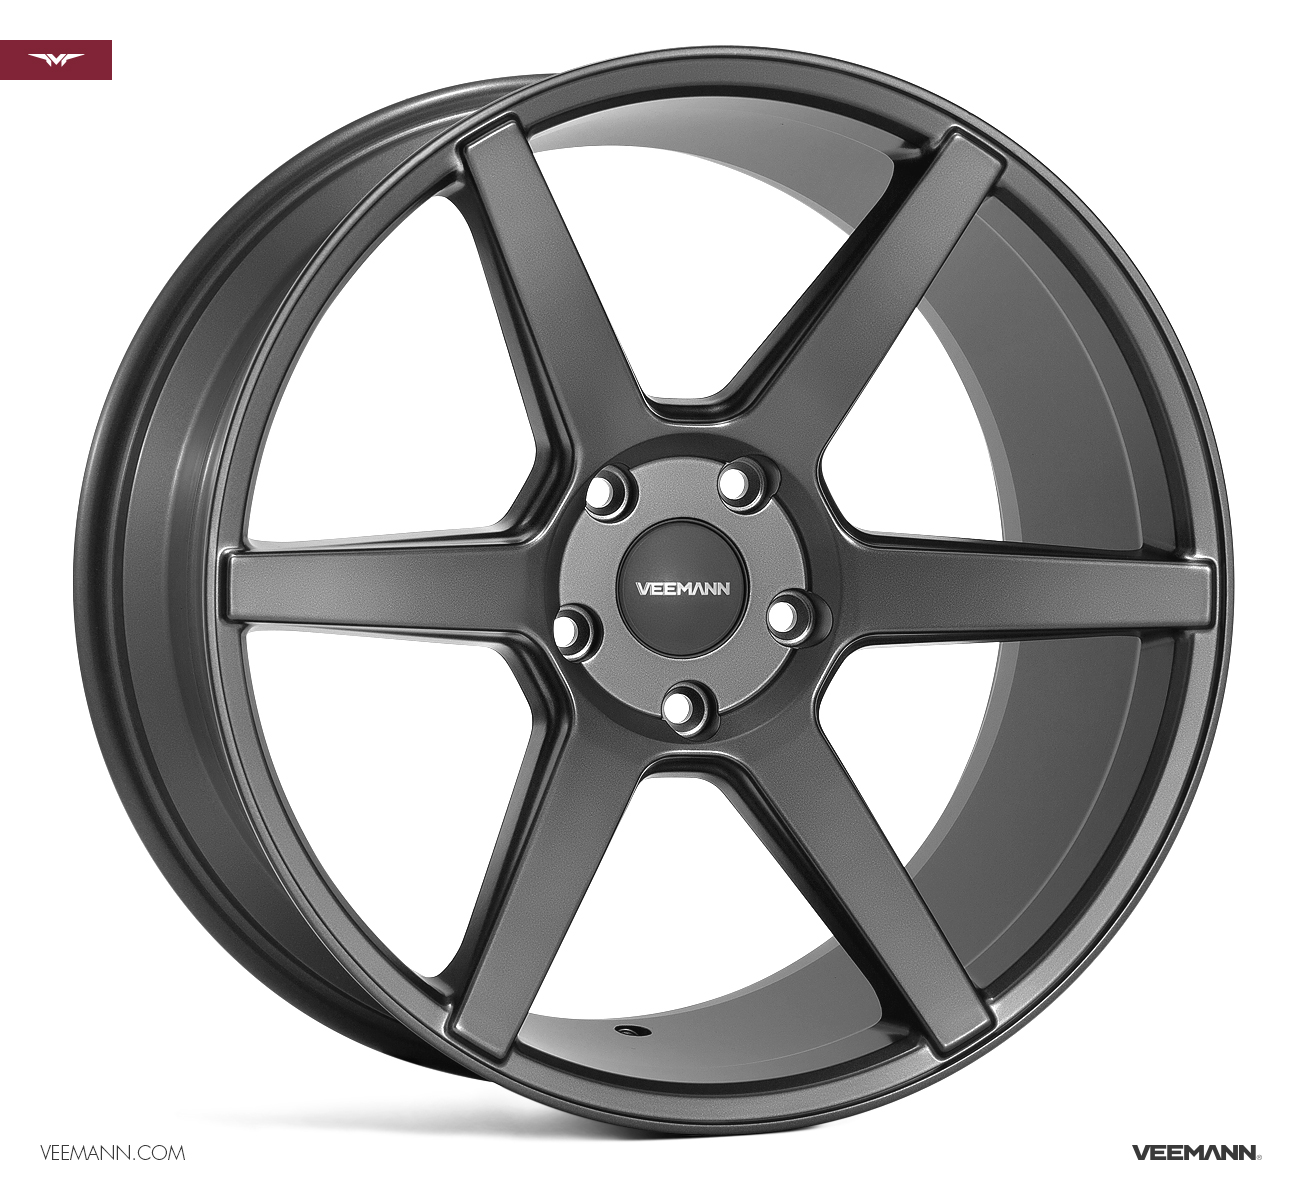 "NEW 20"" VEEMANN V-FS3 6 SPOKE CONCAVE ALLOYS IN SATIN GRAPHITE, WIDER 10"" REAR et38/38"